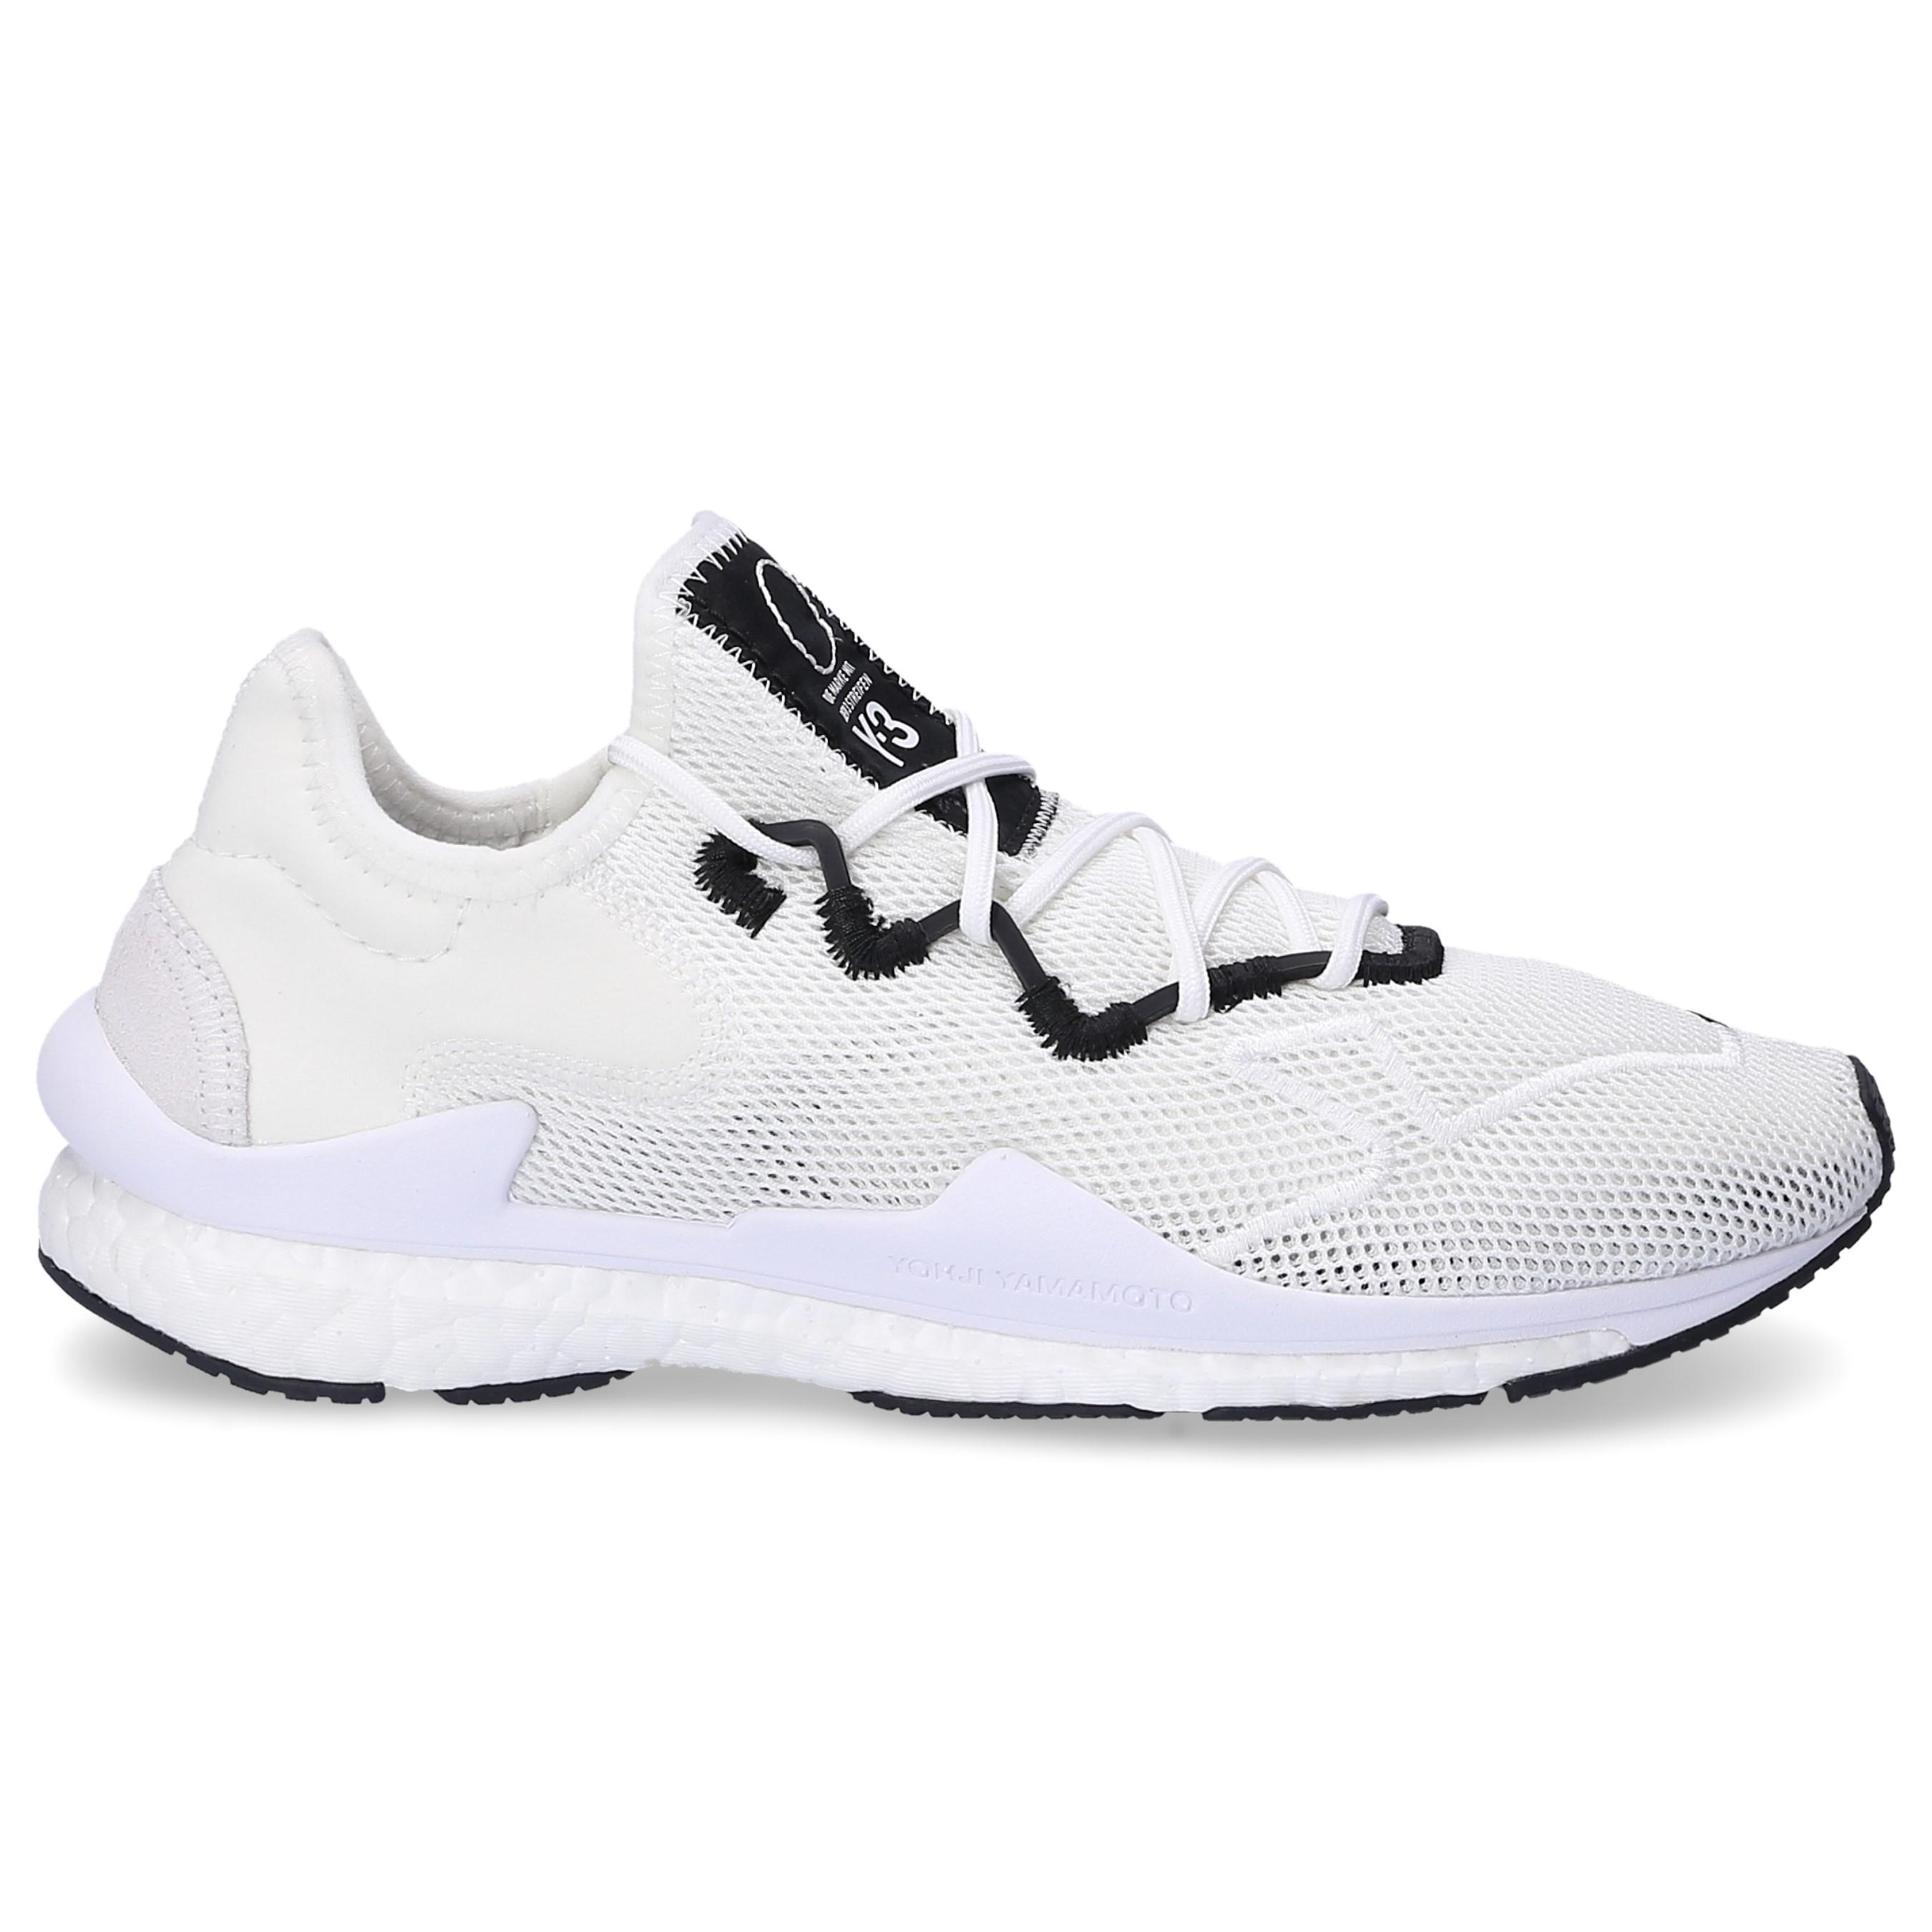 finest selection aaabd 37d78 Y-3 Low-top Sneakers Adizero Runner Mesh Neoprene Logo White in ...